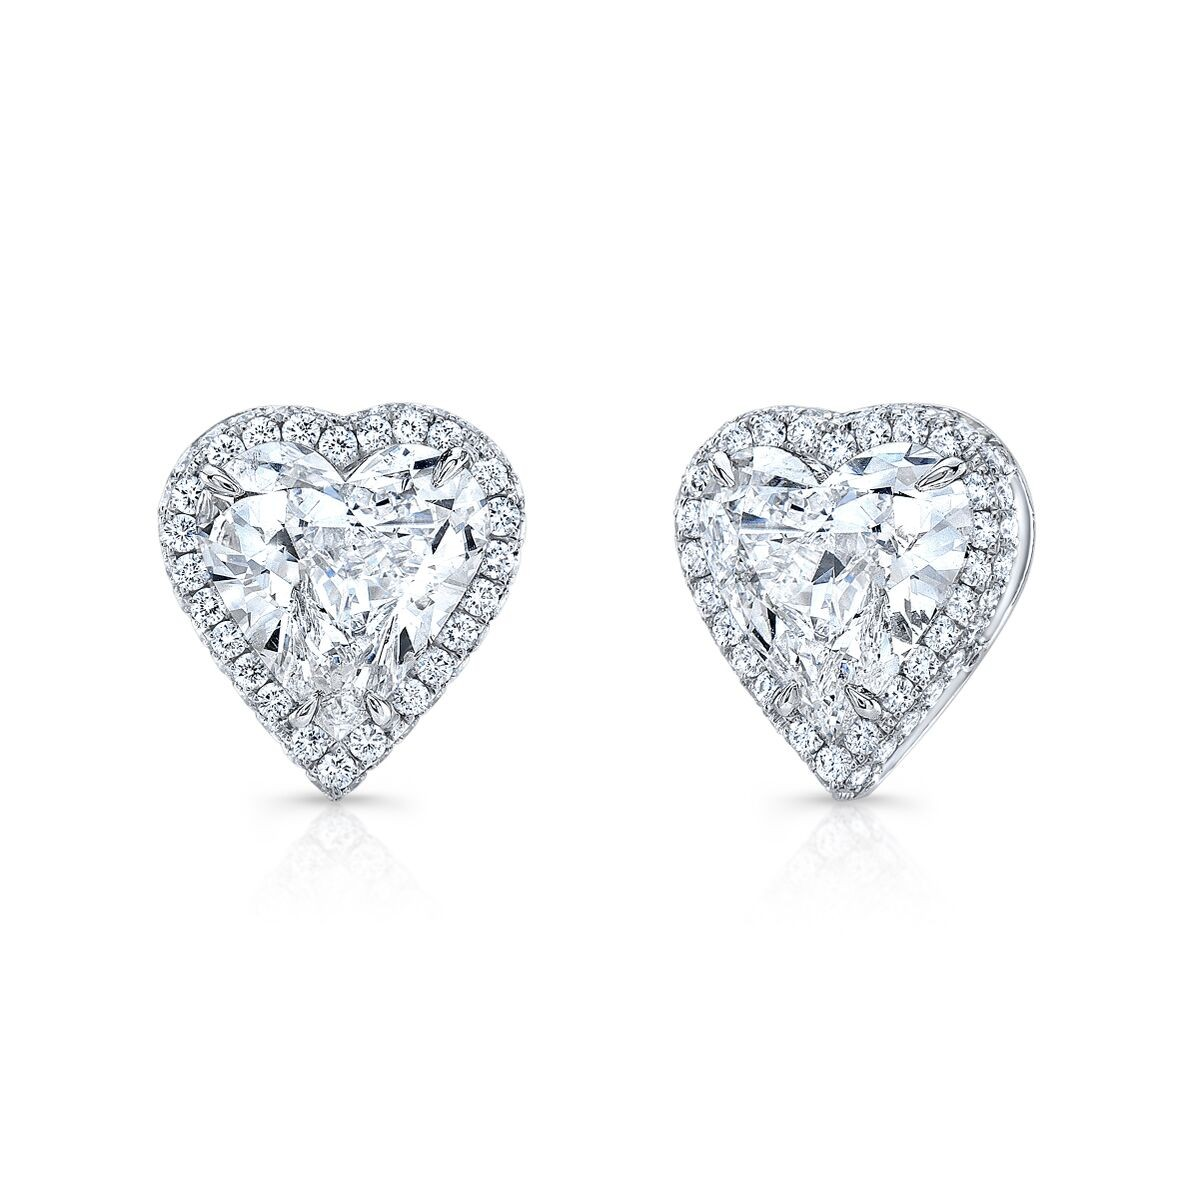 pin drop bridal hanson platinum kristin stud collection diamond earrings